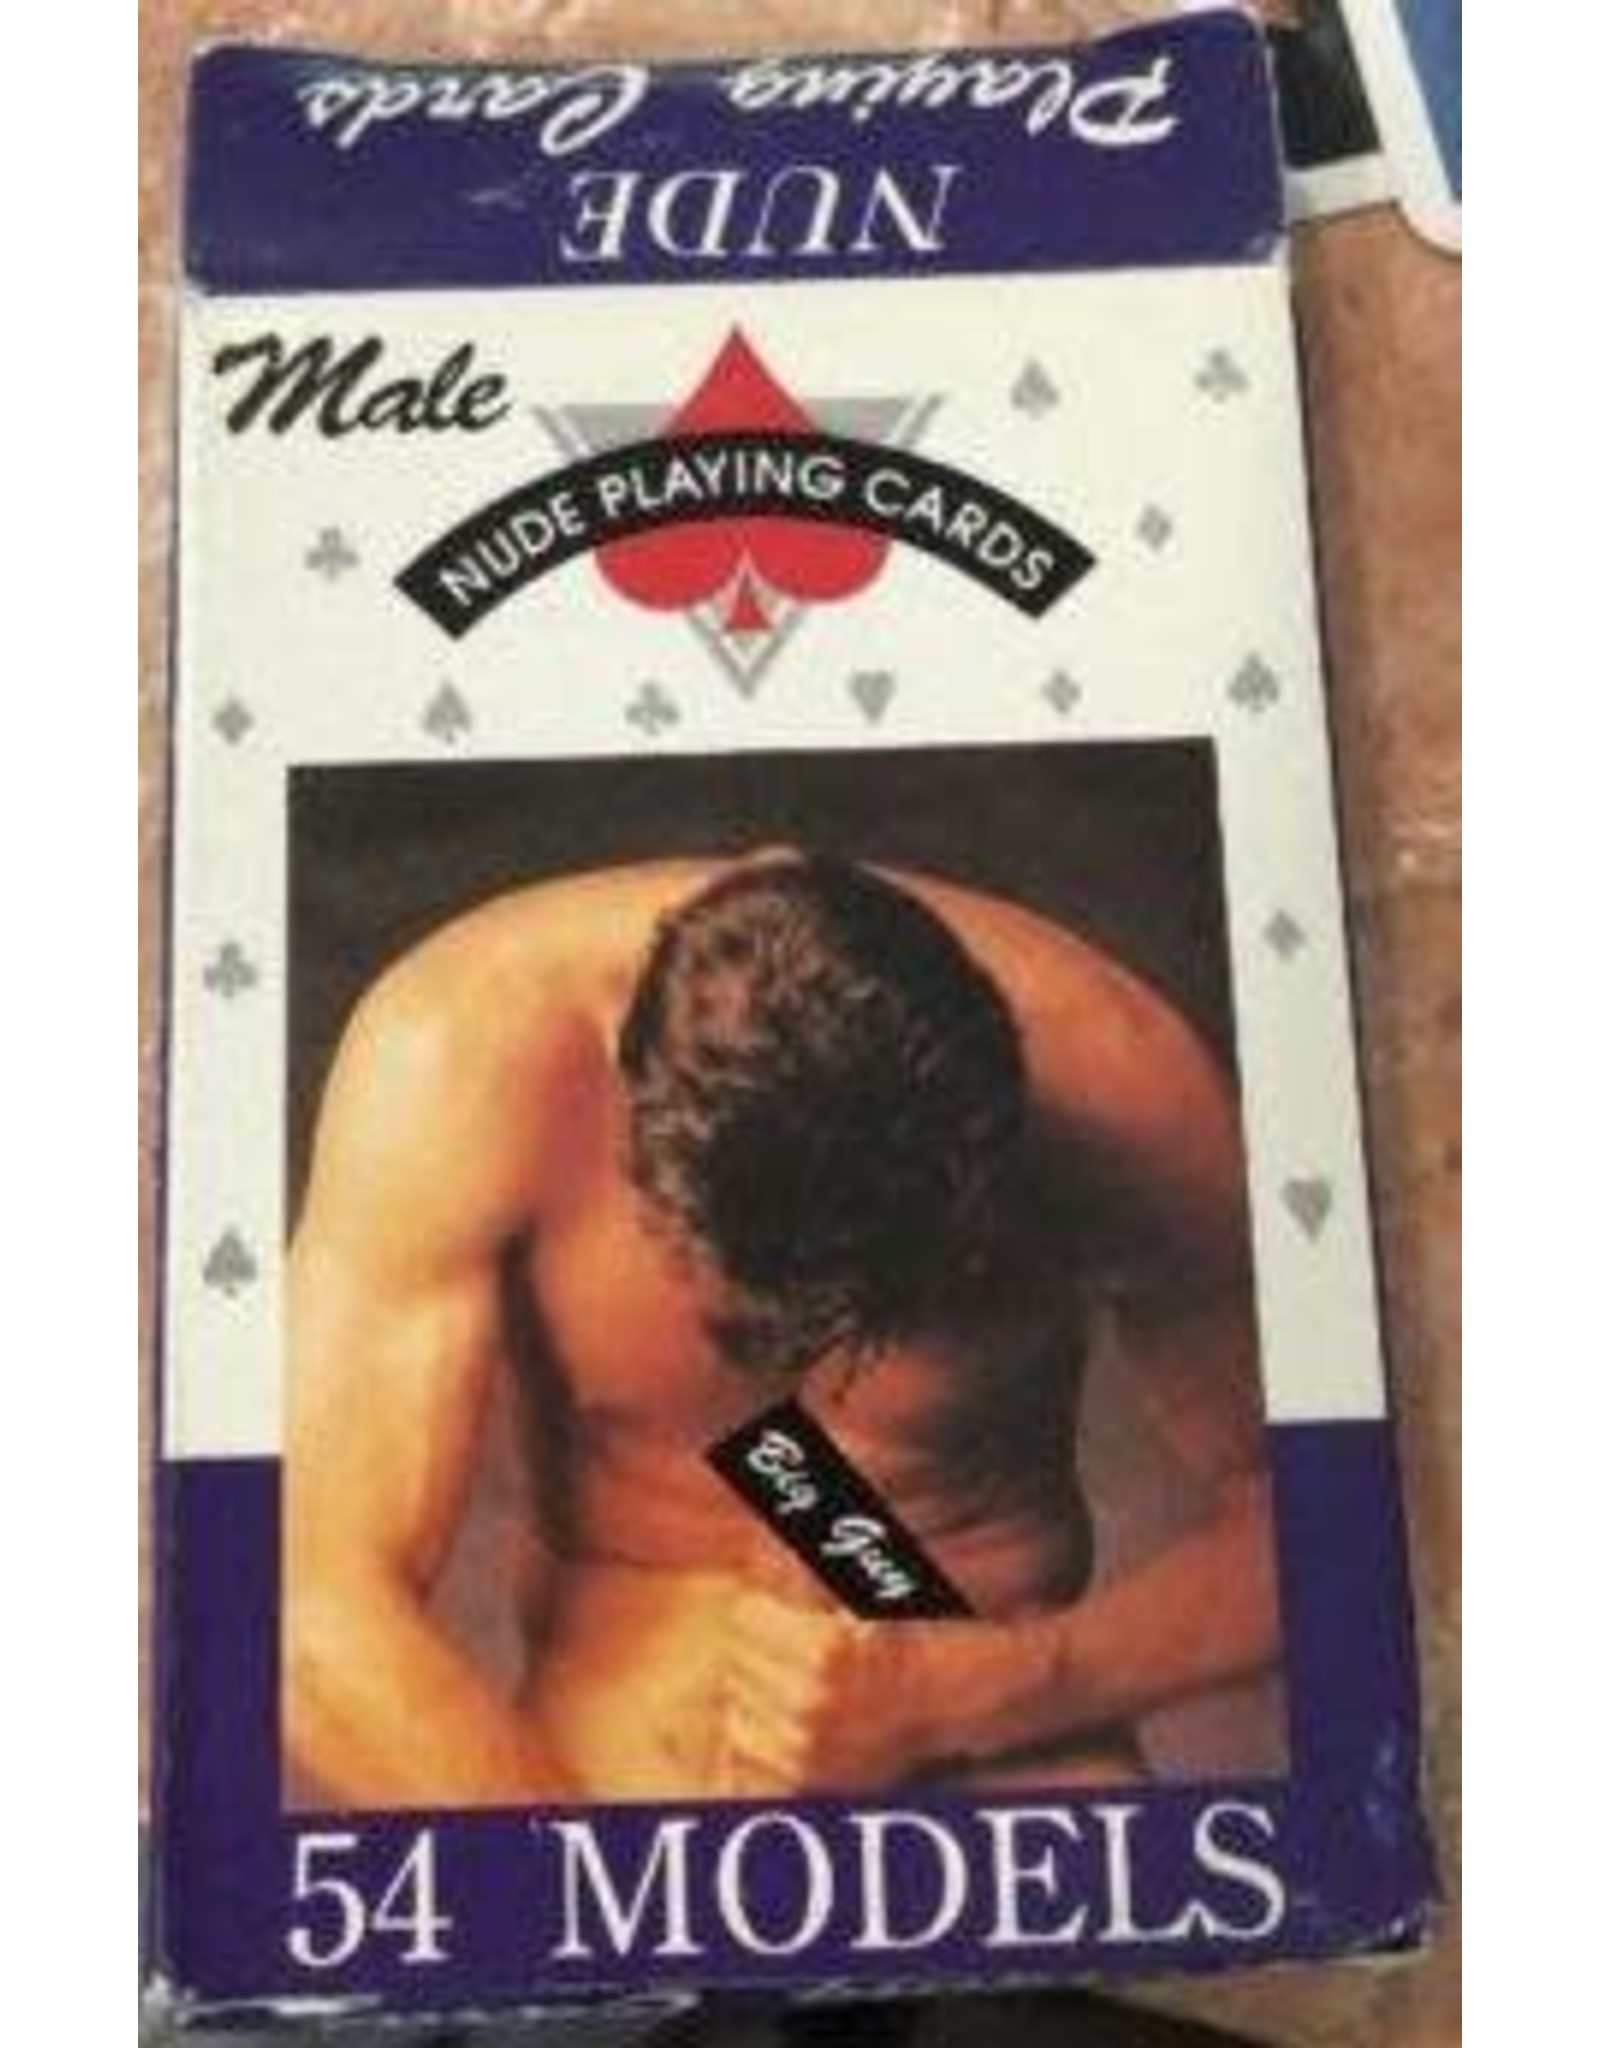 Male Nude Playing Cards